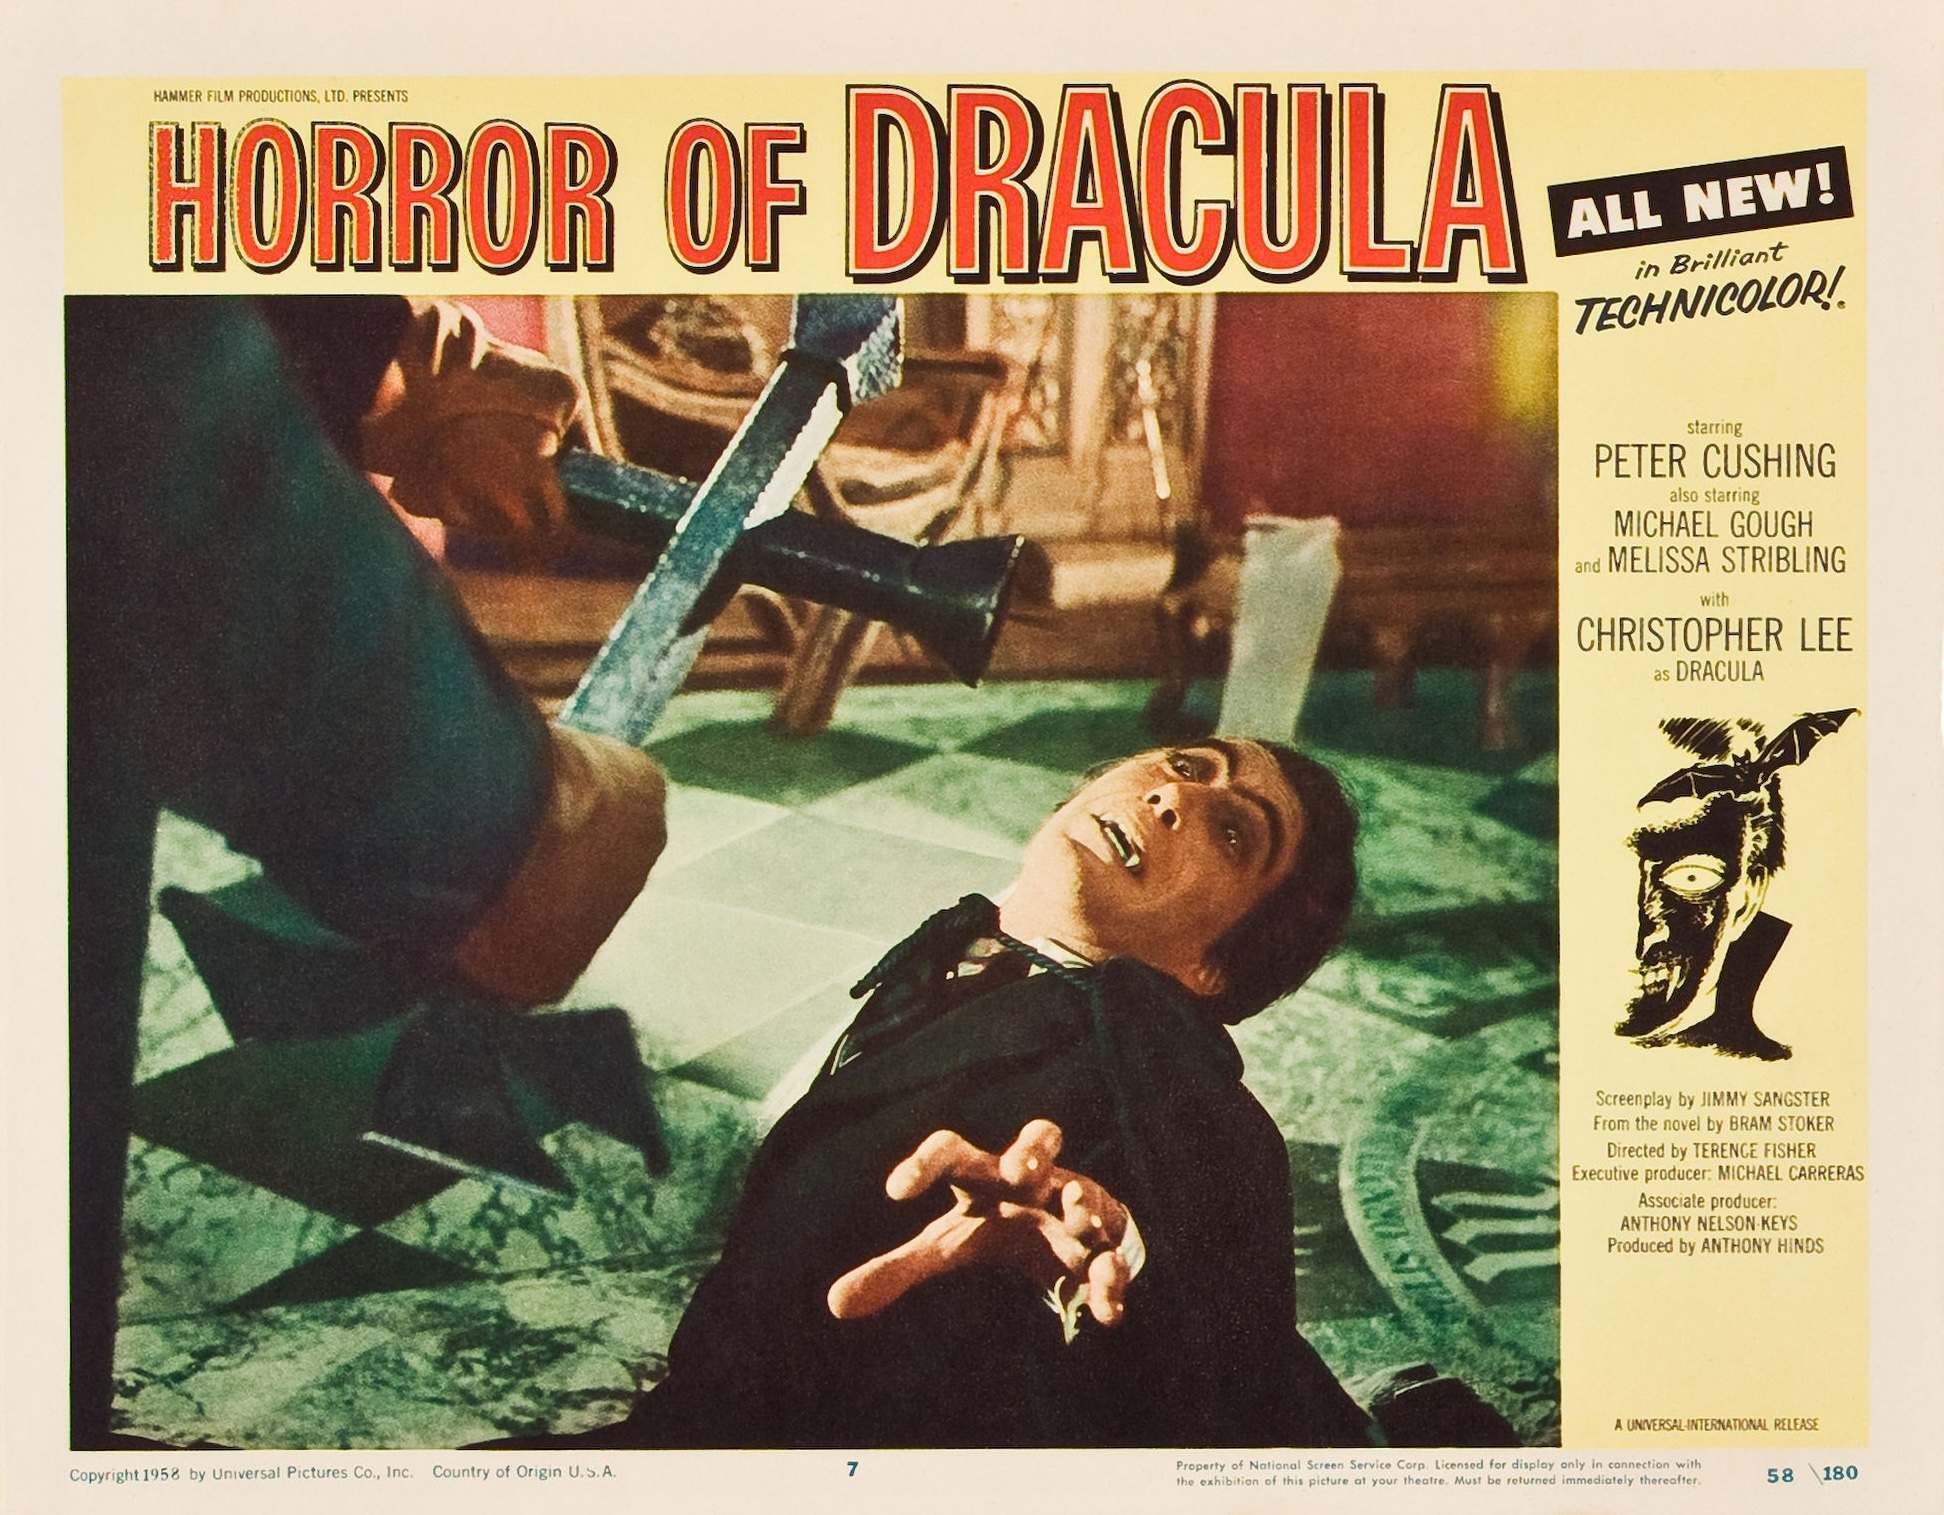 American Horror of Dracula lobby card.